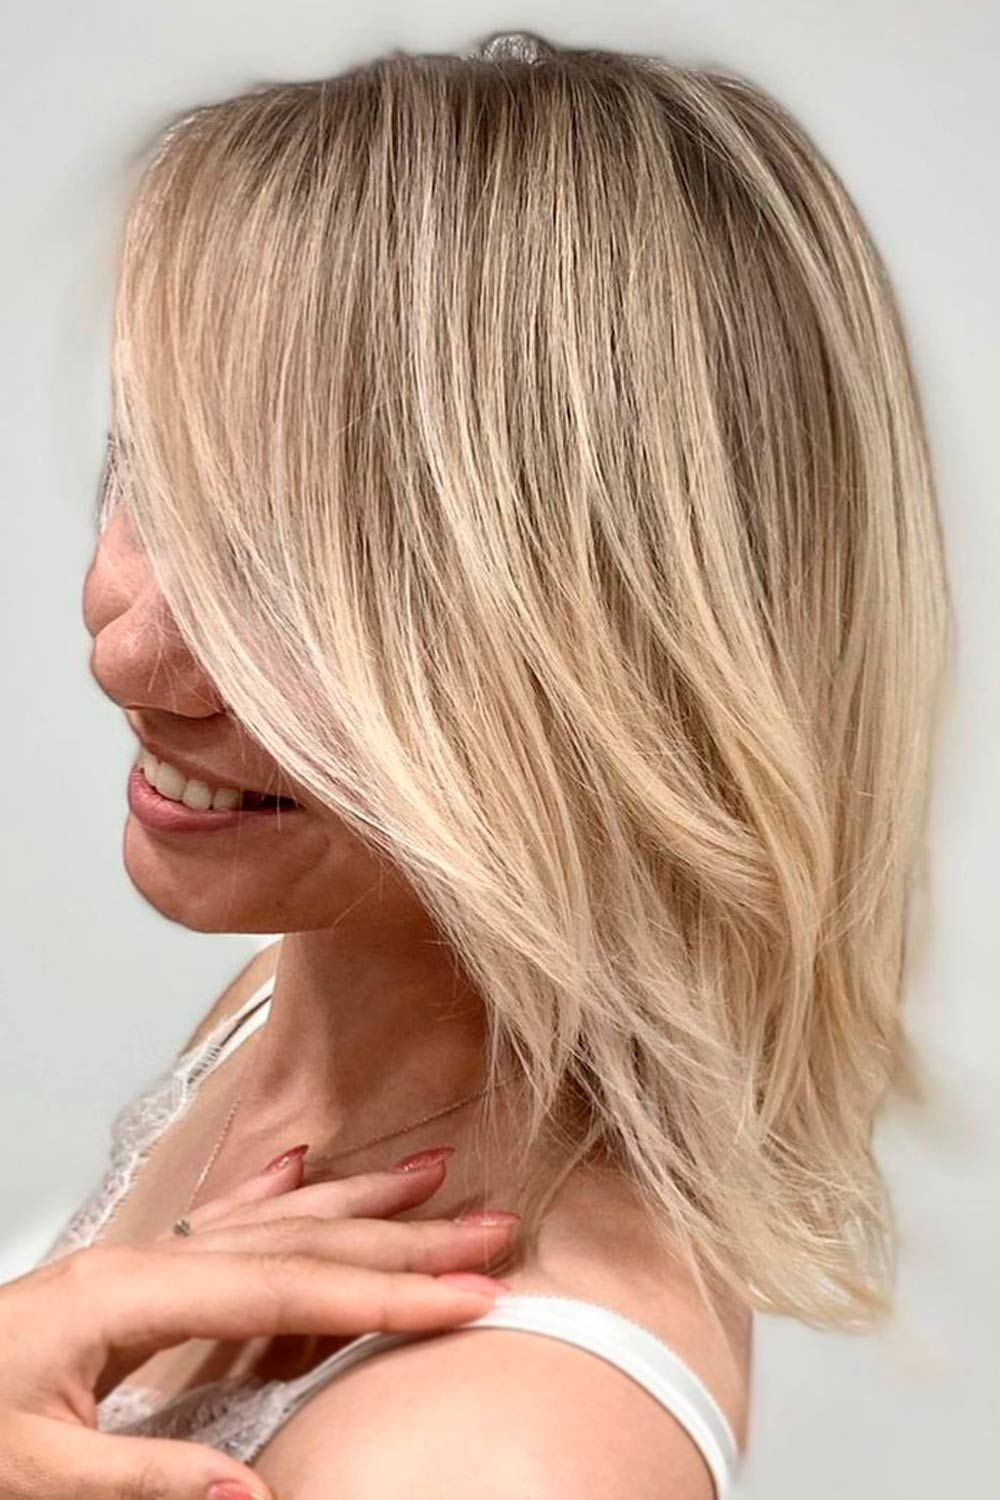 Blonde Lob With Bang, hairstyles for thin hair women over 40, short haircuts for women over 40, bob haircuts for women over 40